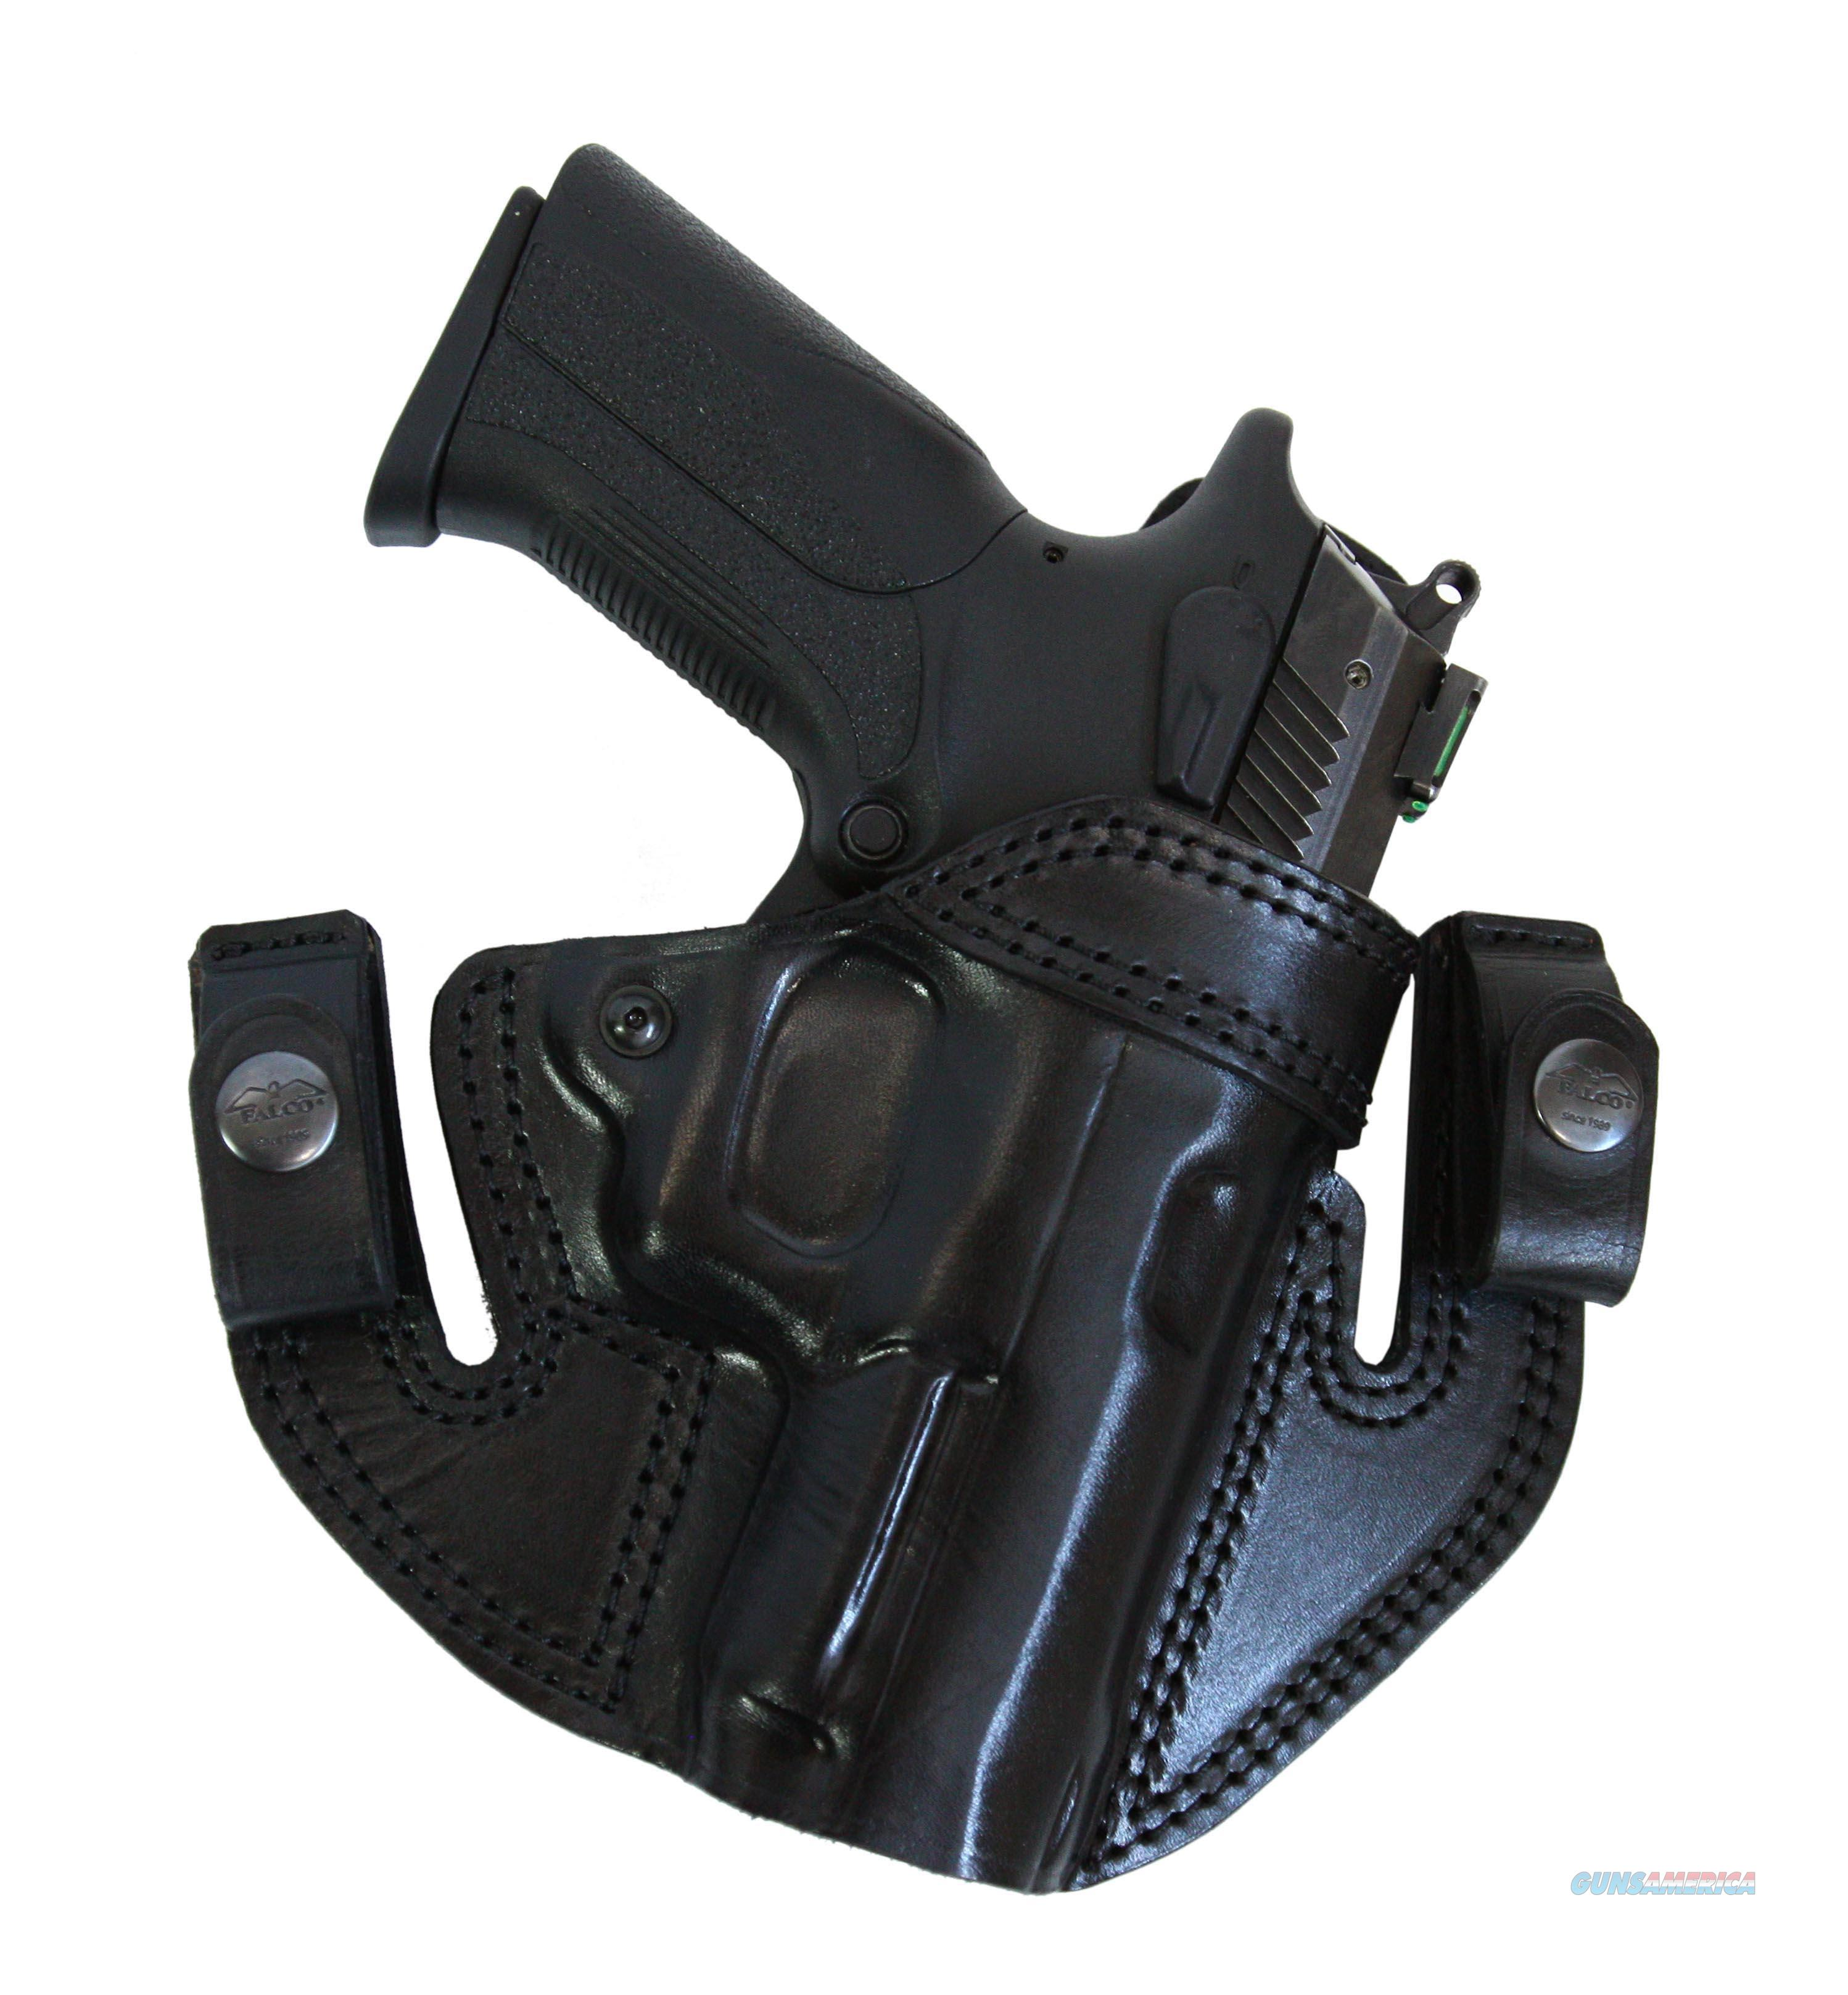 IWB / OWB Leather Gun Holster  Sig Sauer SP2022  Non-Guns > Holsters and Gunleather > Concealed Carry